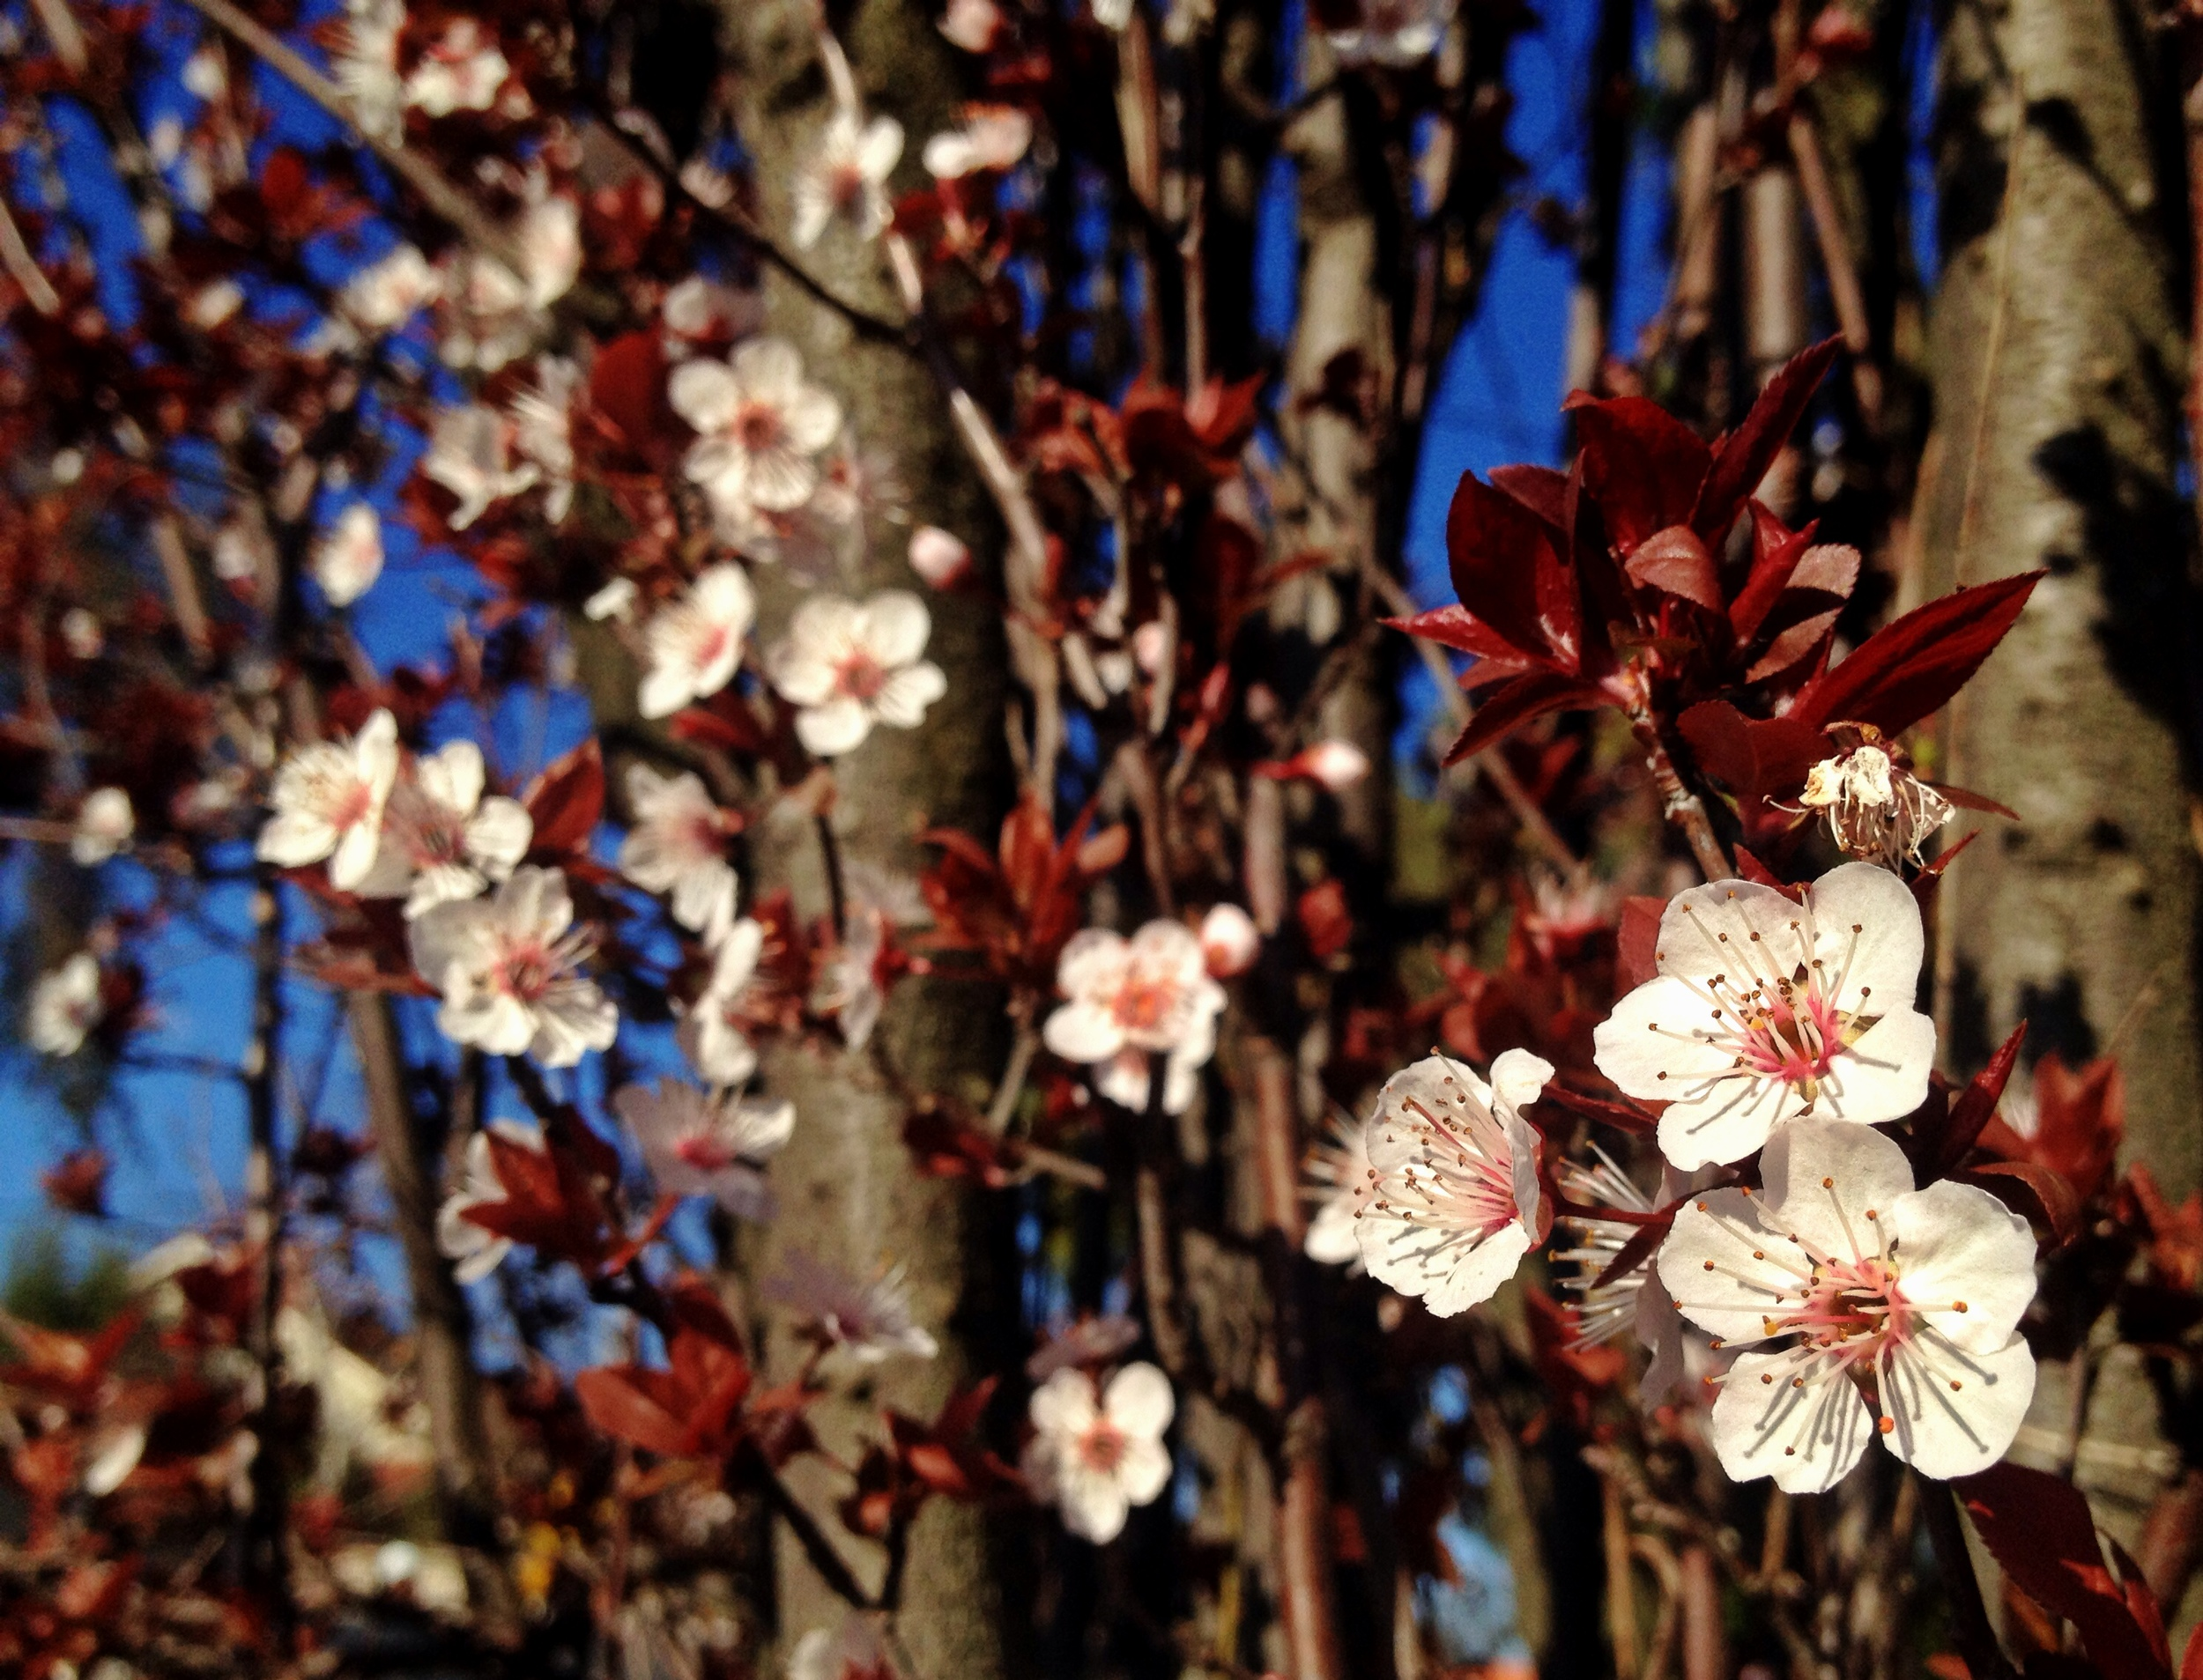 A local cherry plum tree blooms giving way to leaves